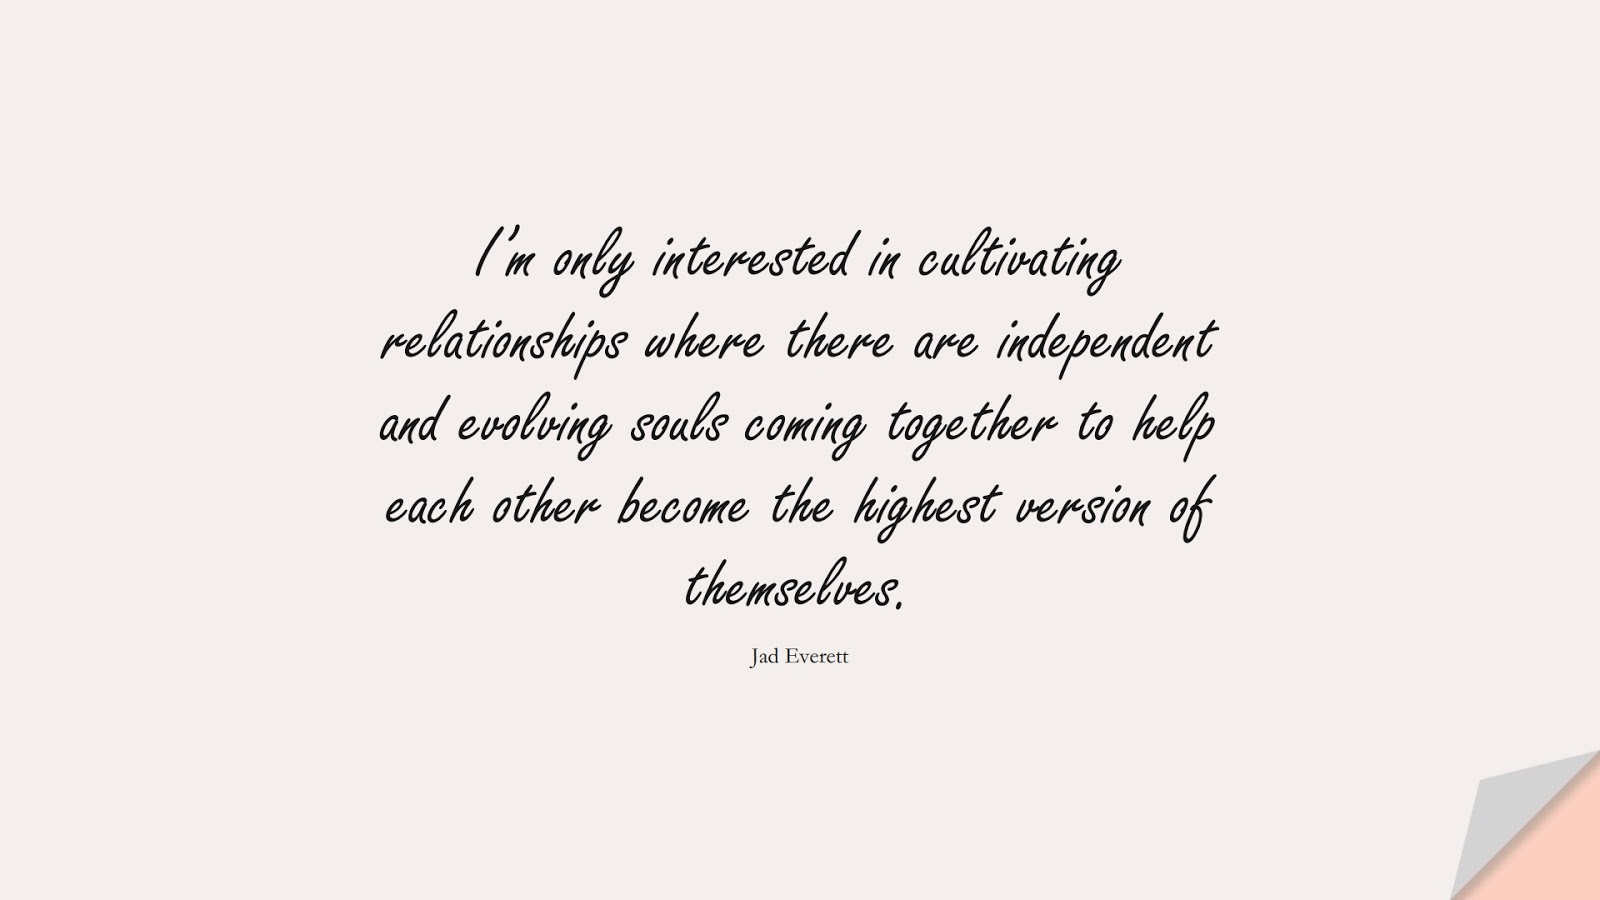 I'm only interested in cultivating relationships where there are independent and evolving souls coming together to help each other become the highest version of themselves. (Jad Everett);  #RelationshipQuotes